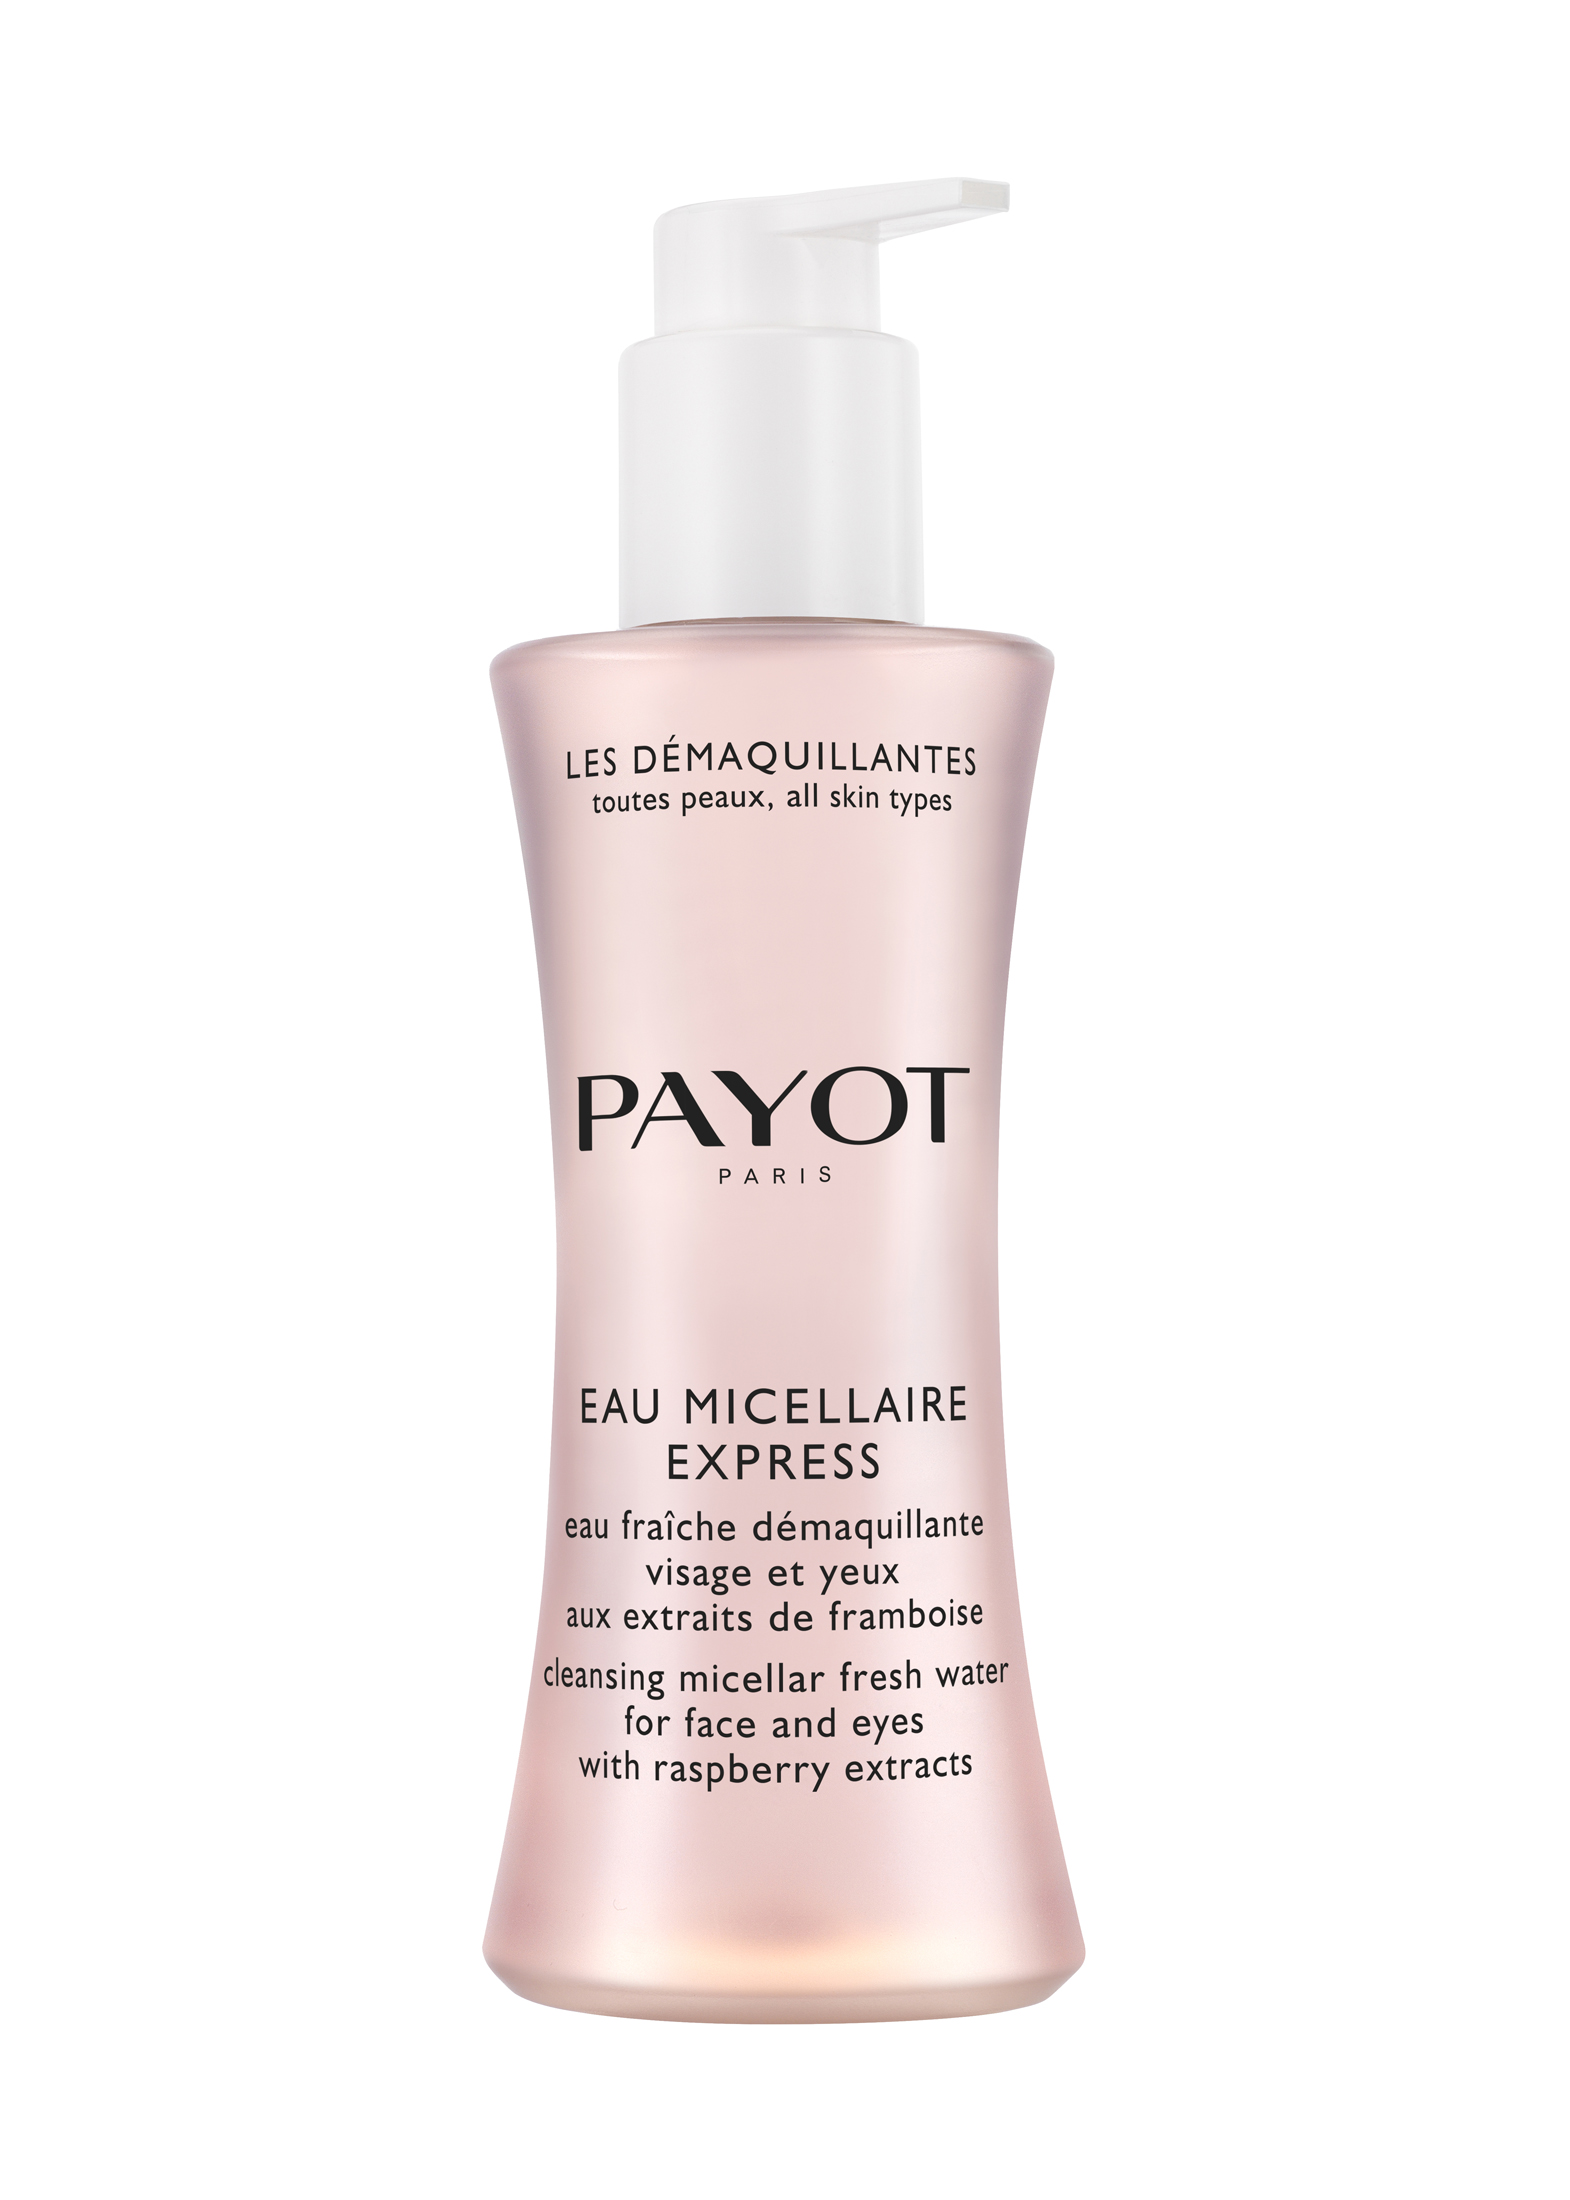 Payot, Eau Micellaire Express 200ml image number 0